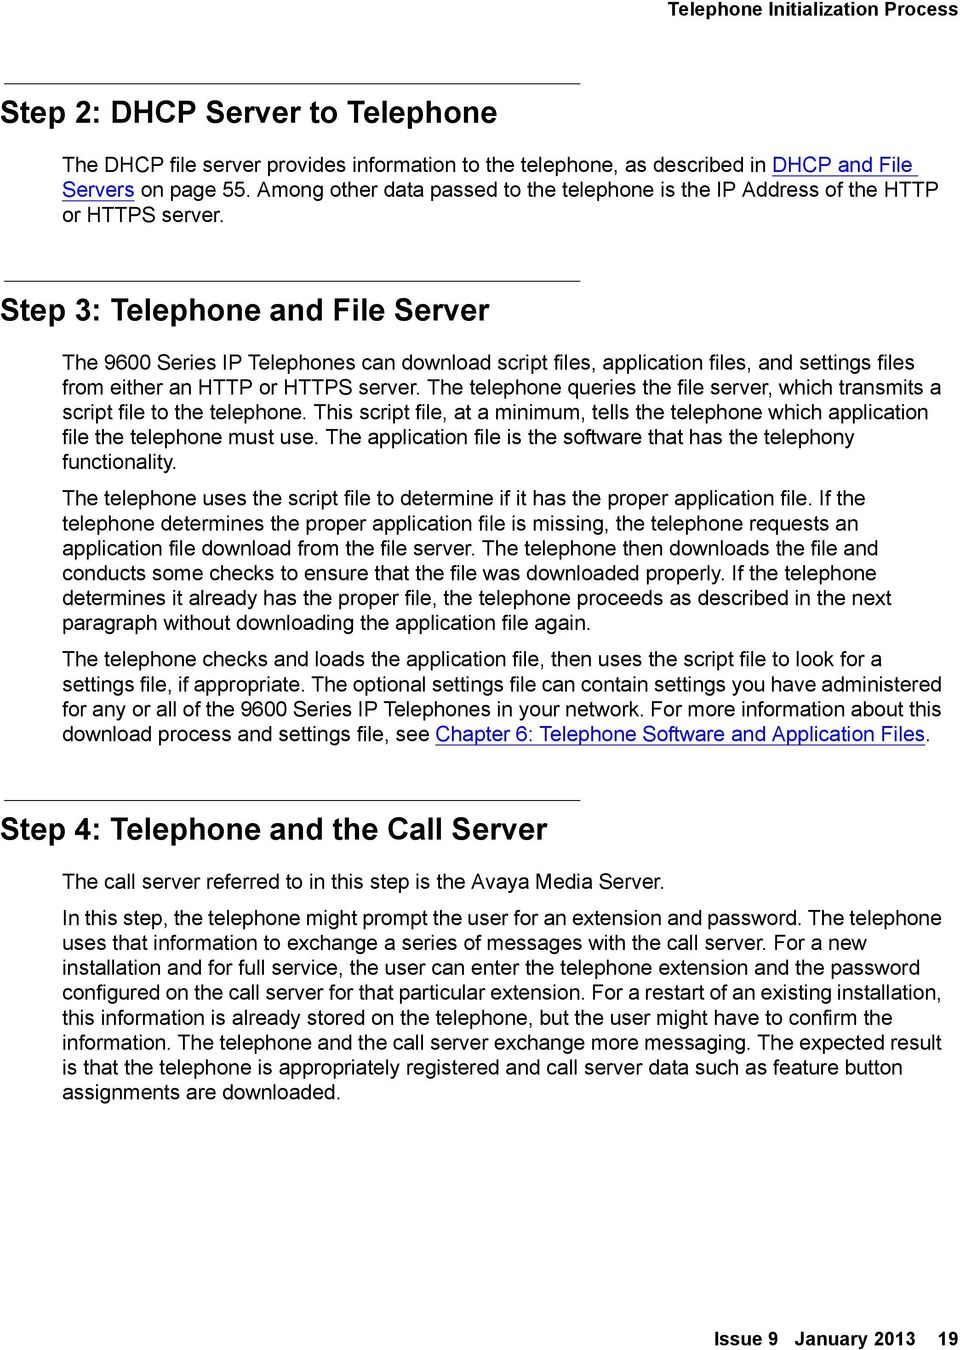 Step 3: Telephone and File Server The 9600 Series IP Telephones can download script files, application files, and settings files from either an HTTP or HTTPS server.